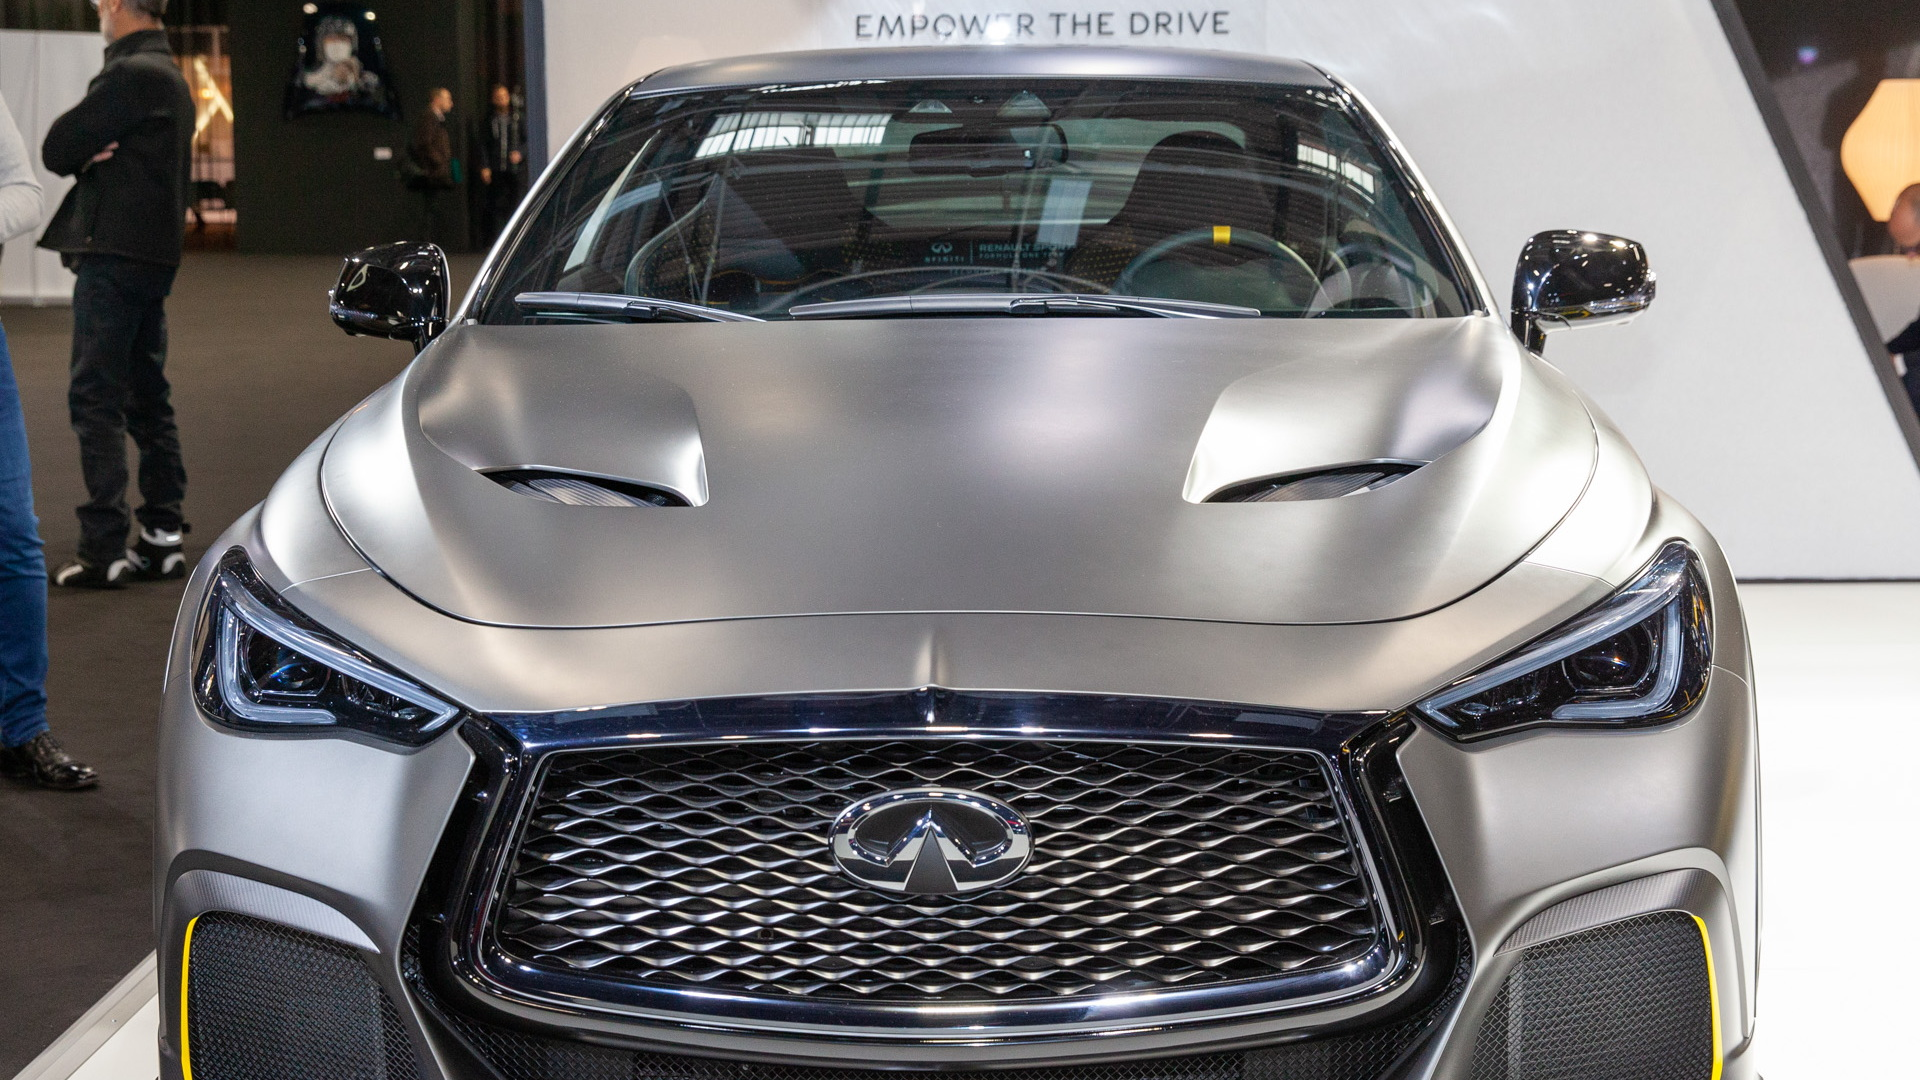 Infiniti Q60 Project Black S Concept, 2018 Paris auto show